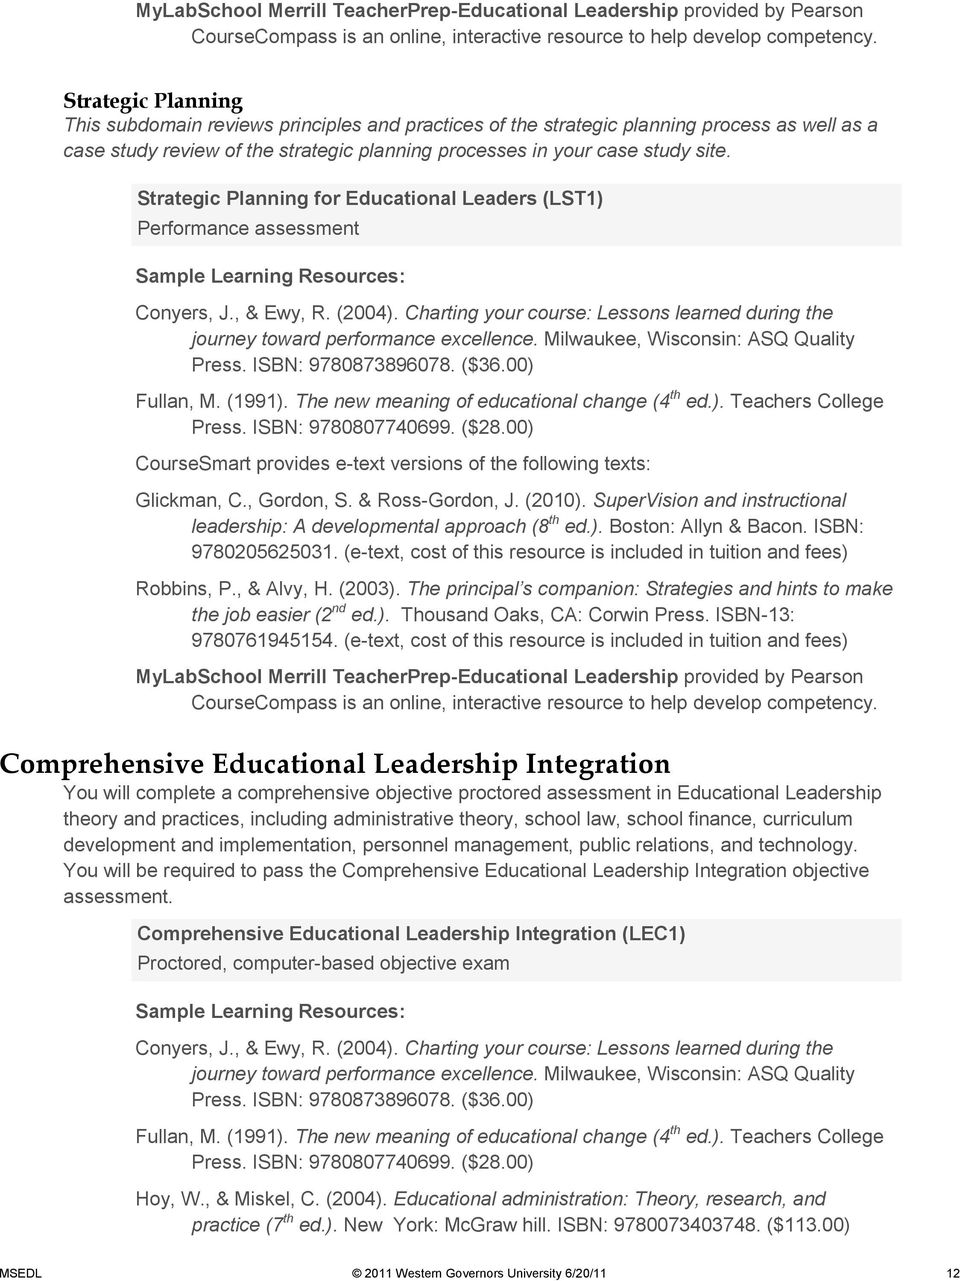 Strategic Planning for Educational Leaders (LST1) Performance assessment Sample Learning Resources: Conyers, J., & Ewy, R. (2004).